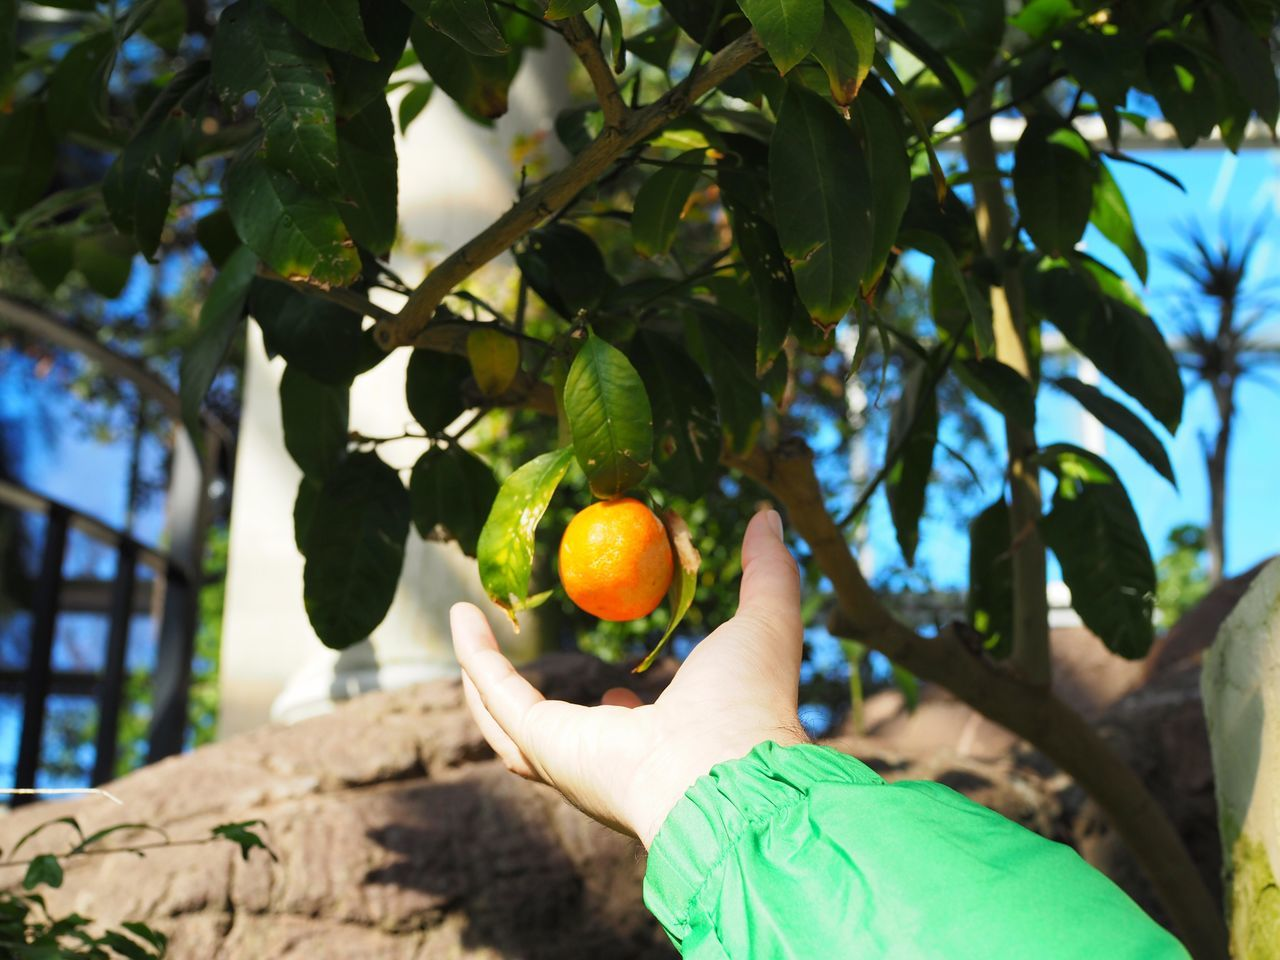 Fruit Human Hand Citrus Fruit Growth Food And Drink Freshness Tree Food Orange - Fruit Leaf Juicy Fruit Tree Orange Tree Picking Agriculture Branch Missouri Botanical Garden Blooming